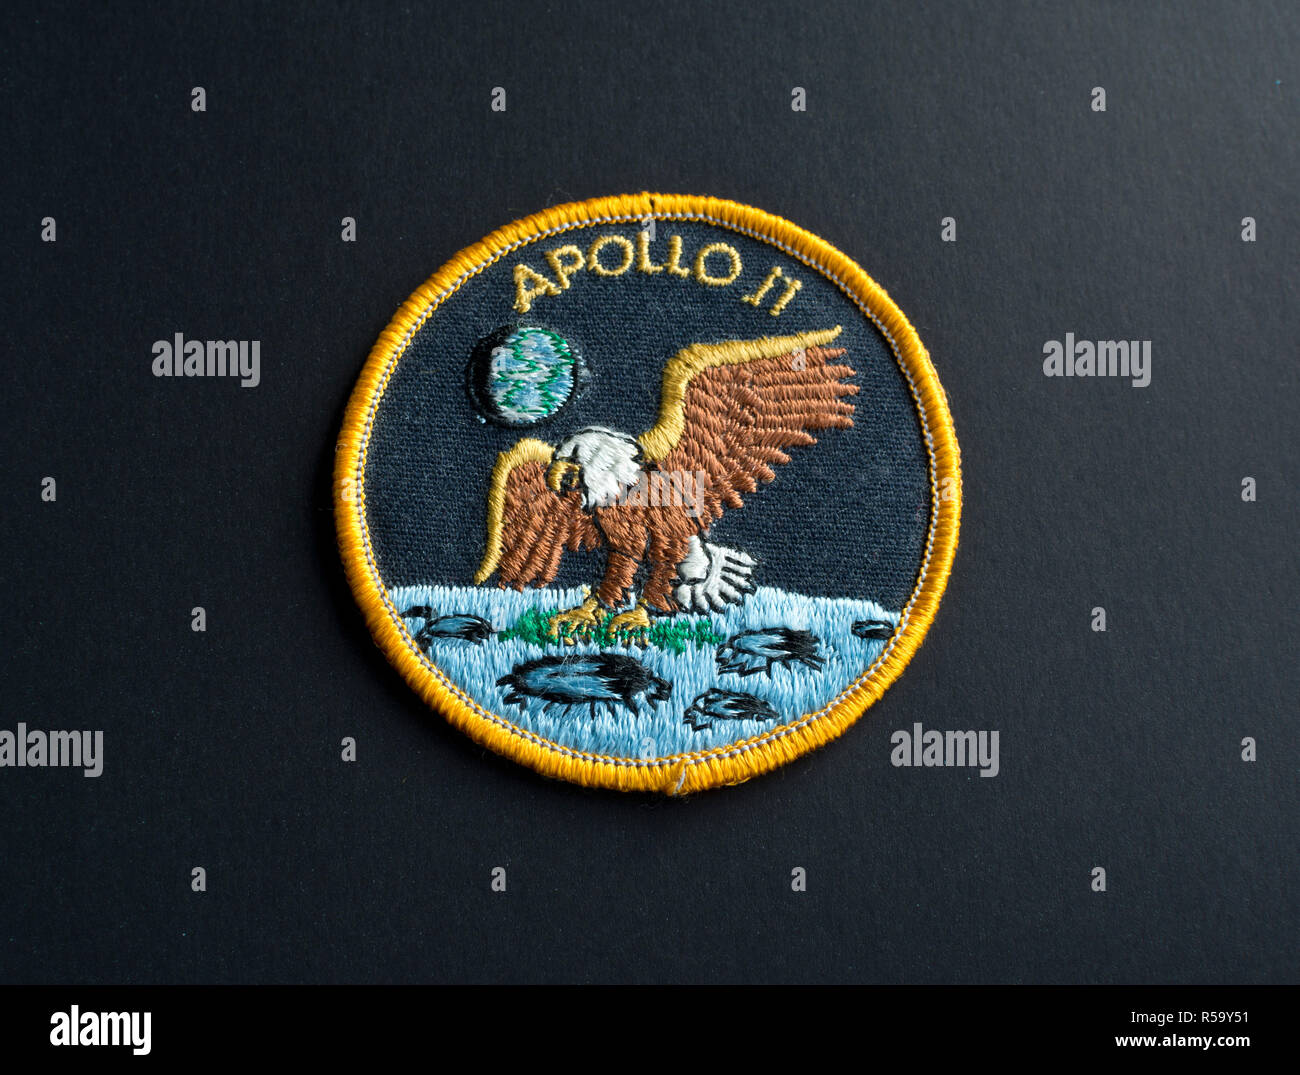 Apollo 11 Nasa Moon Landing Space Mission Patch Eagle Aufnäher .